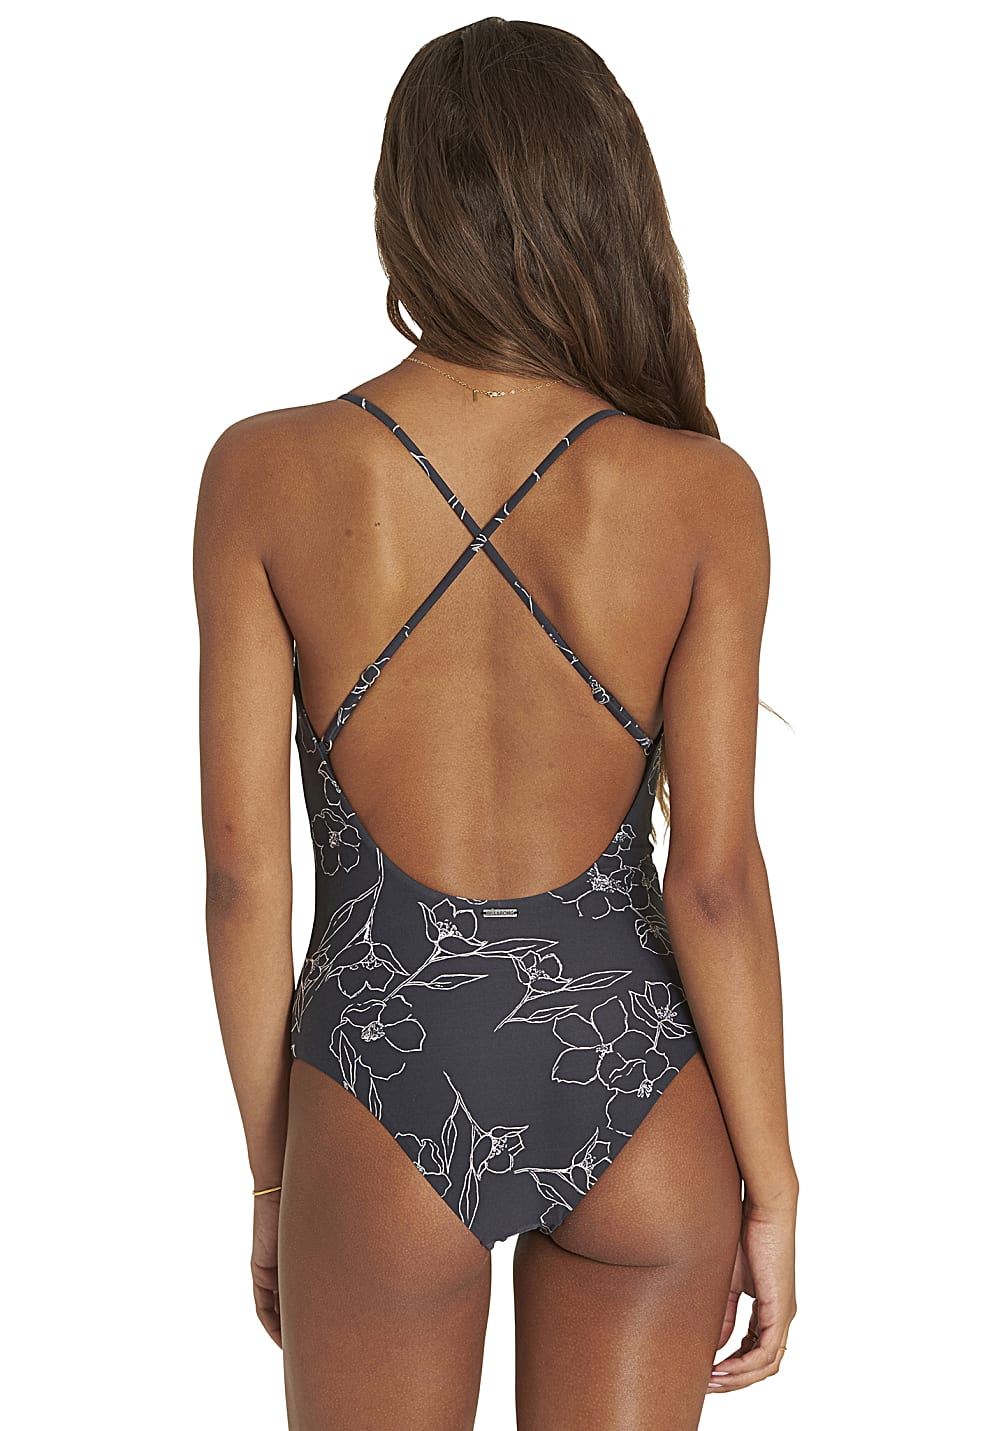 dda7462d2f ... BILLABONG Nightfall - One-piece Swimsuit for Women - Grey. Back to  Overview. 1  2. Previous